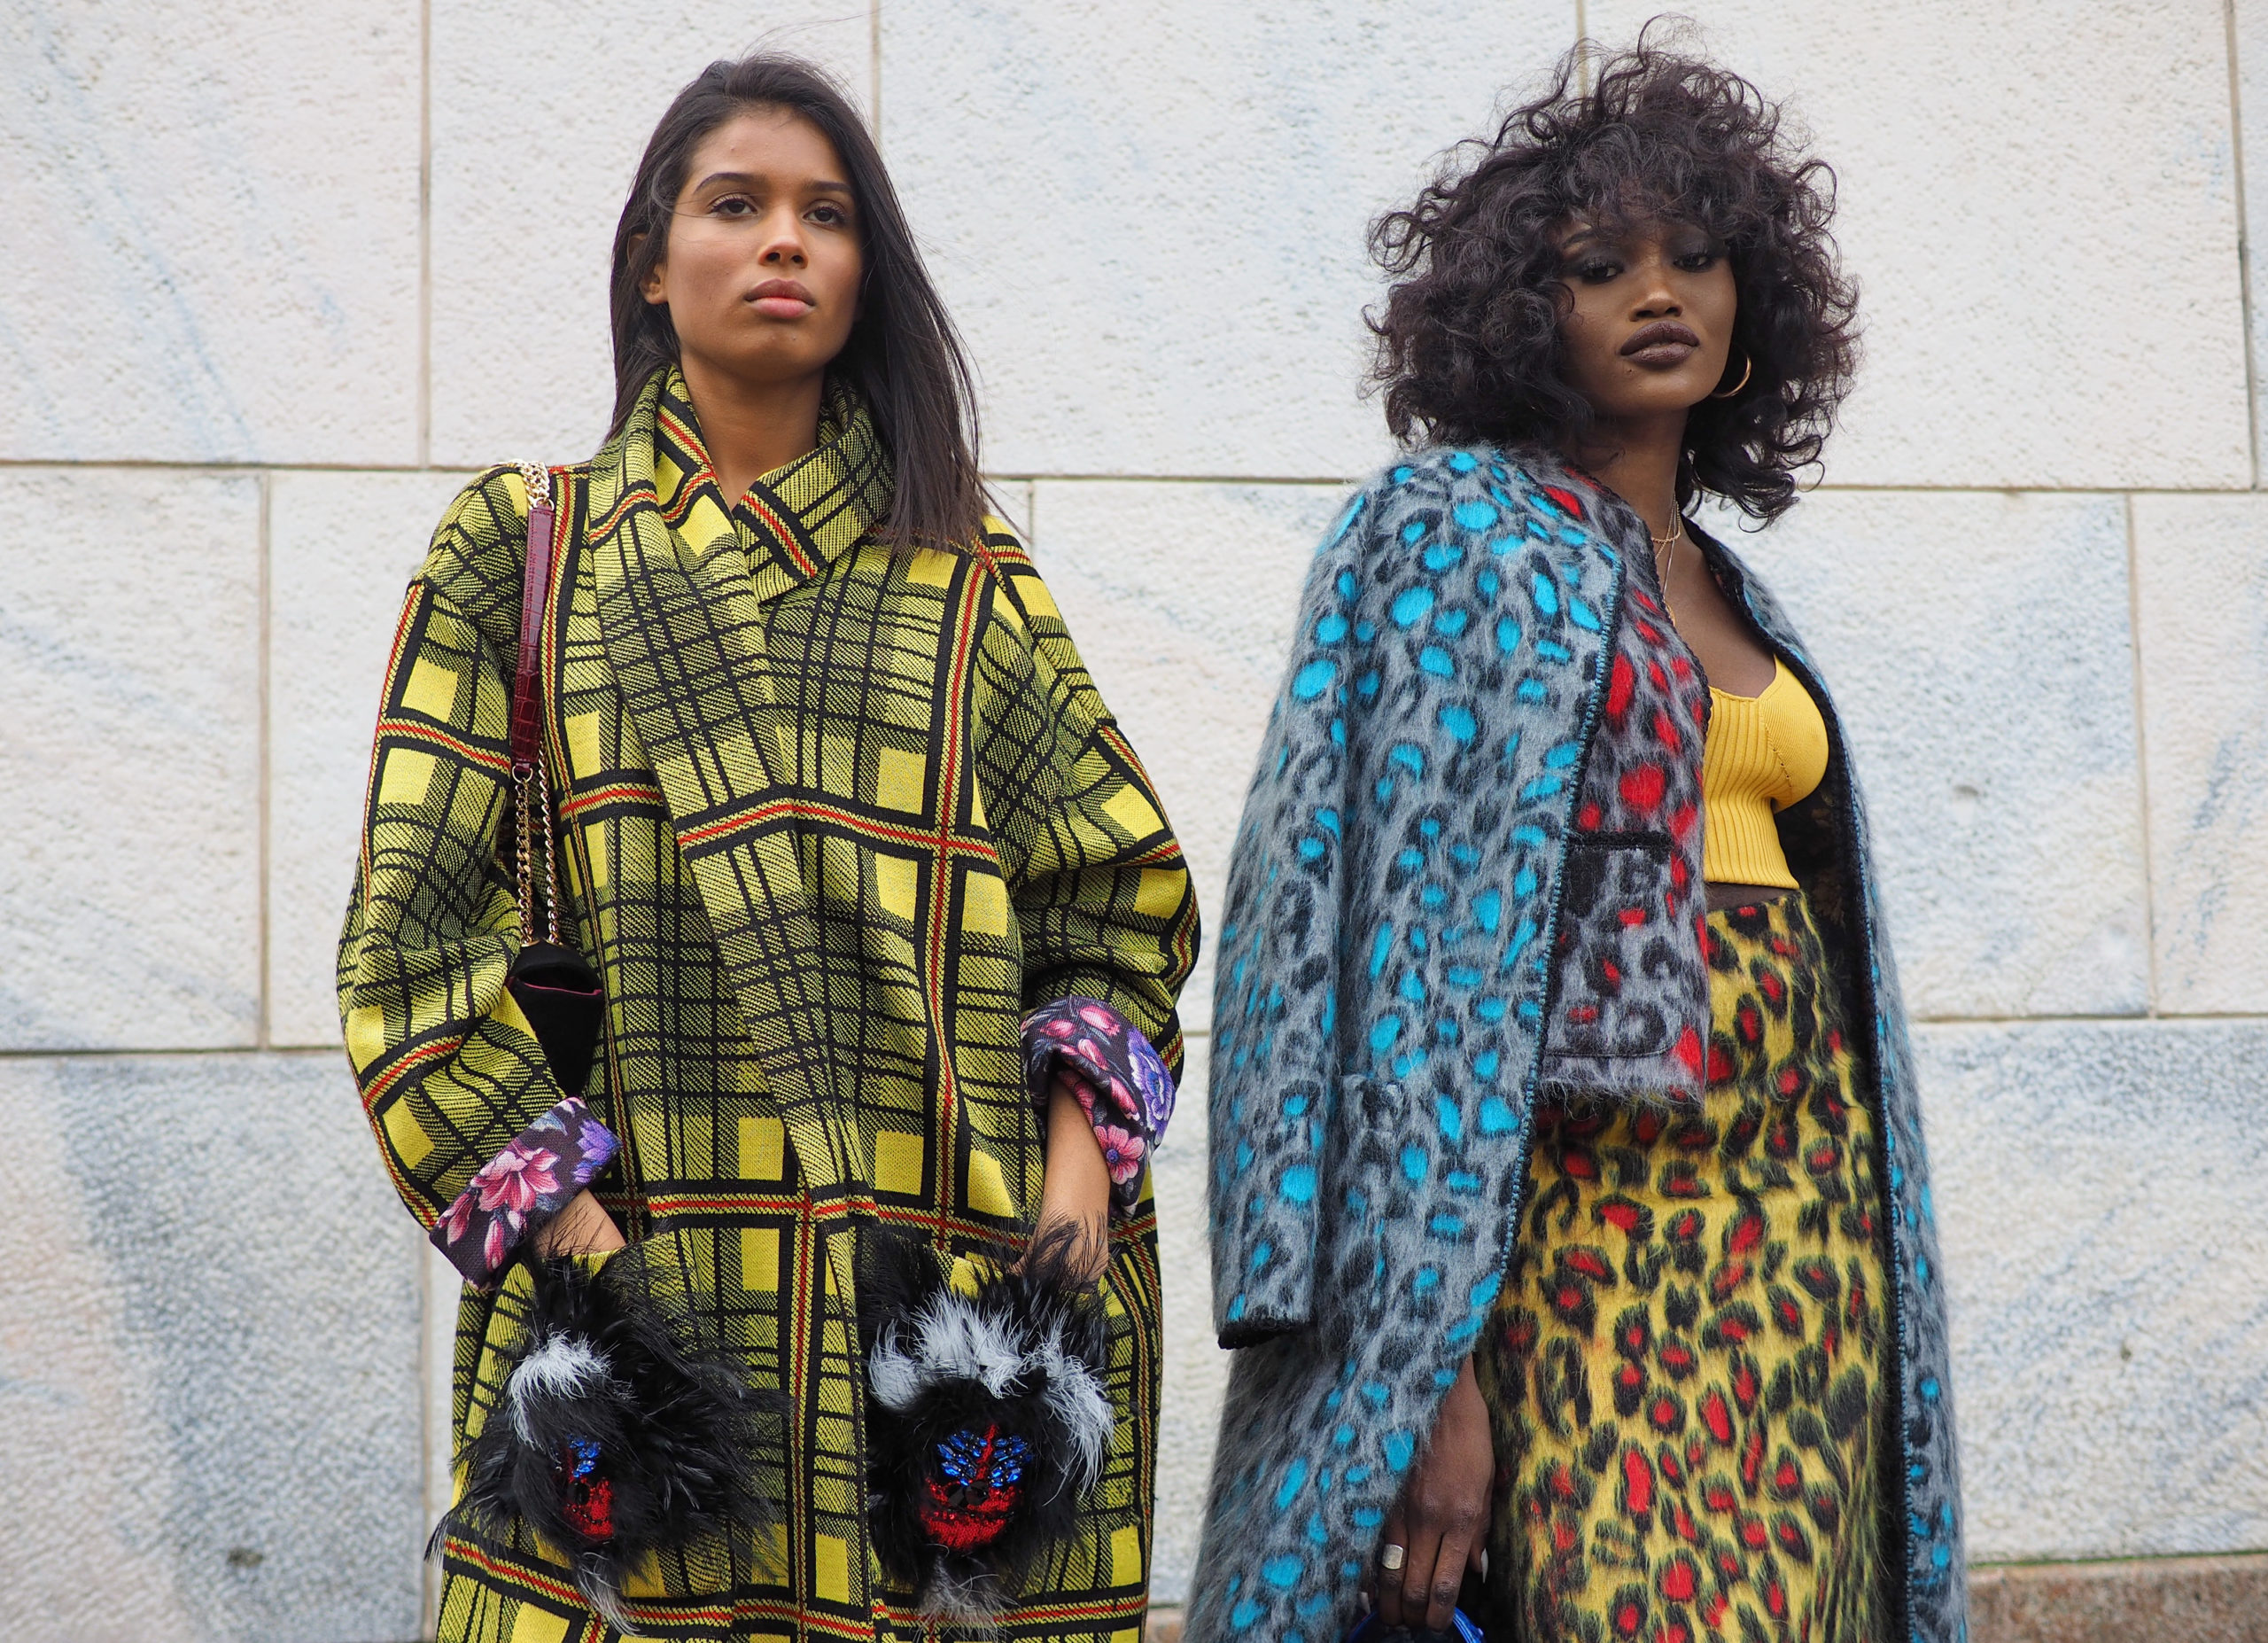 Top 5 Fashion Trends To Know For Fall 2021